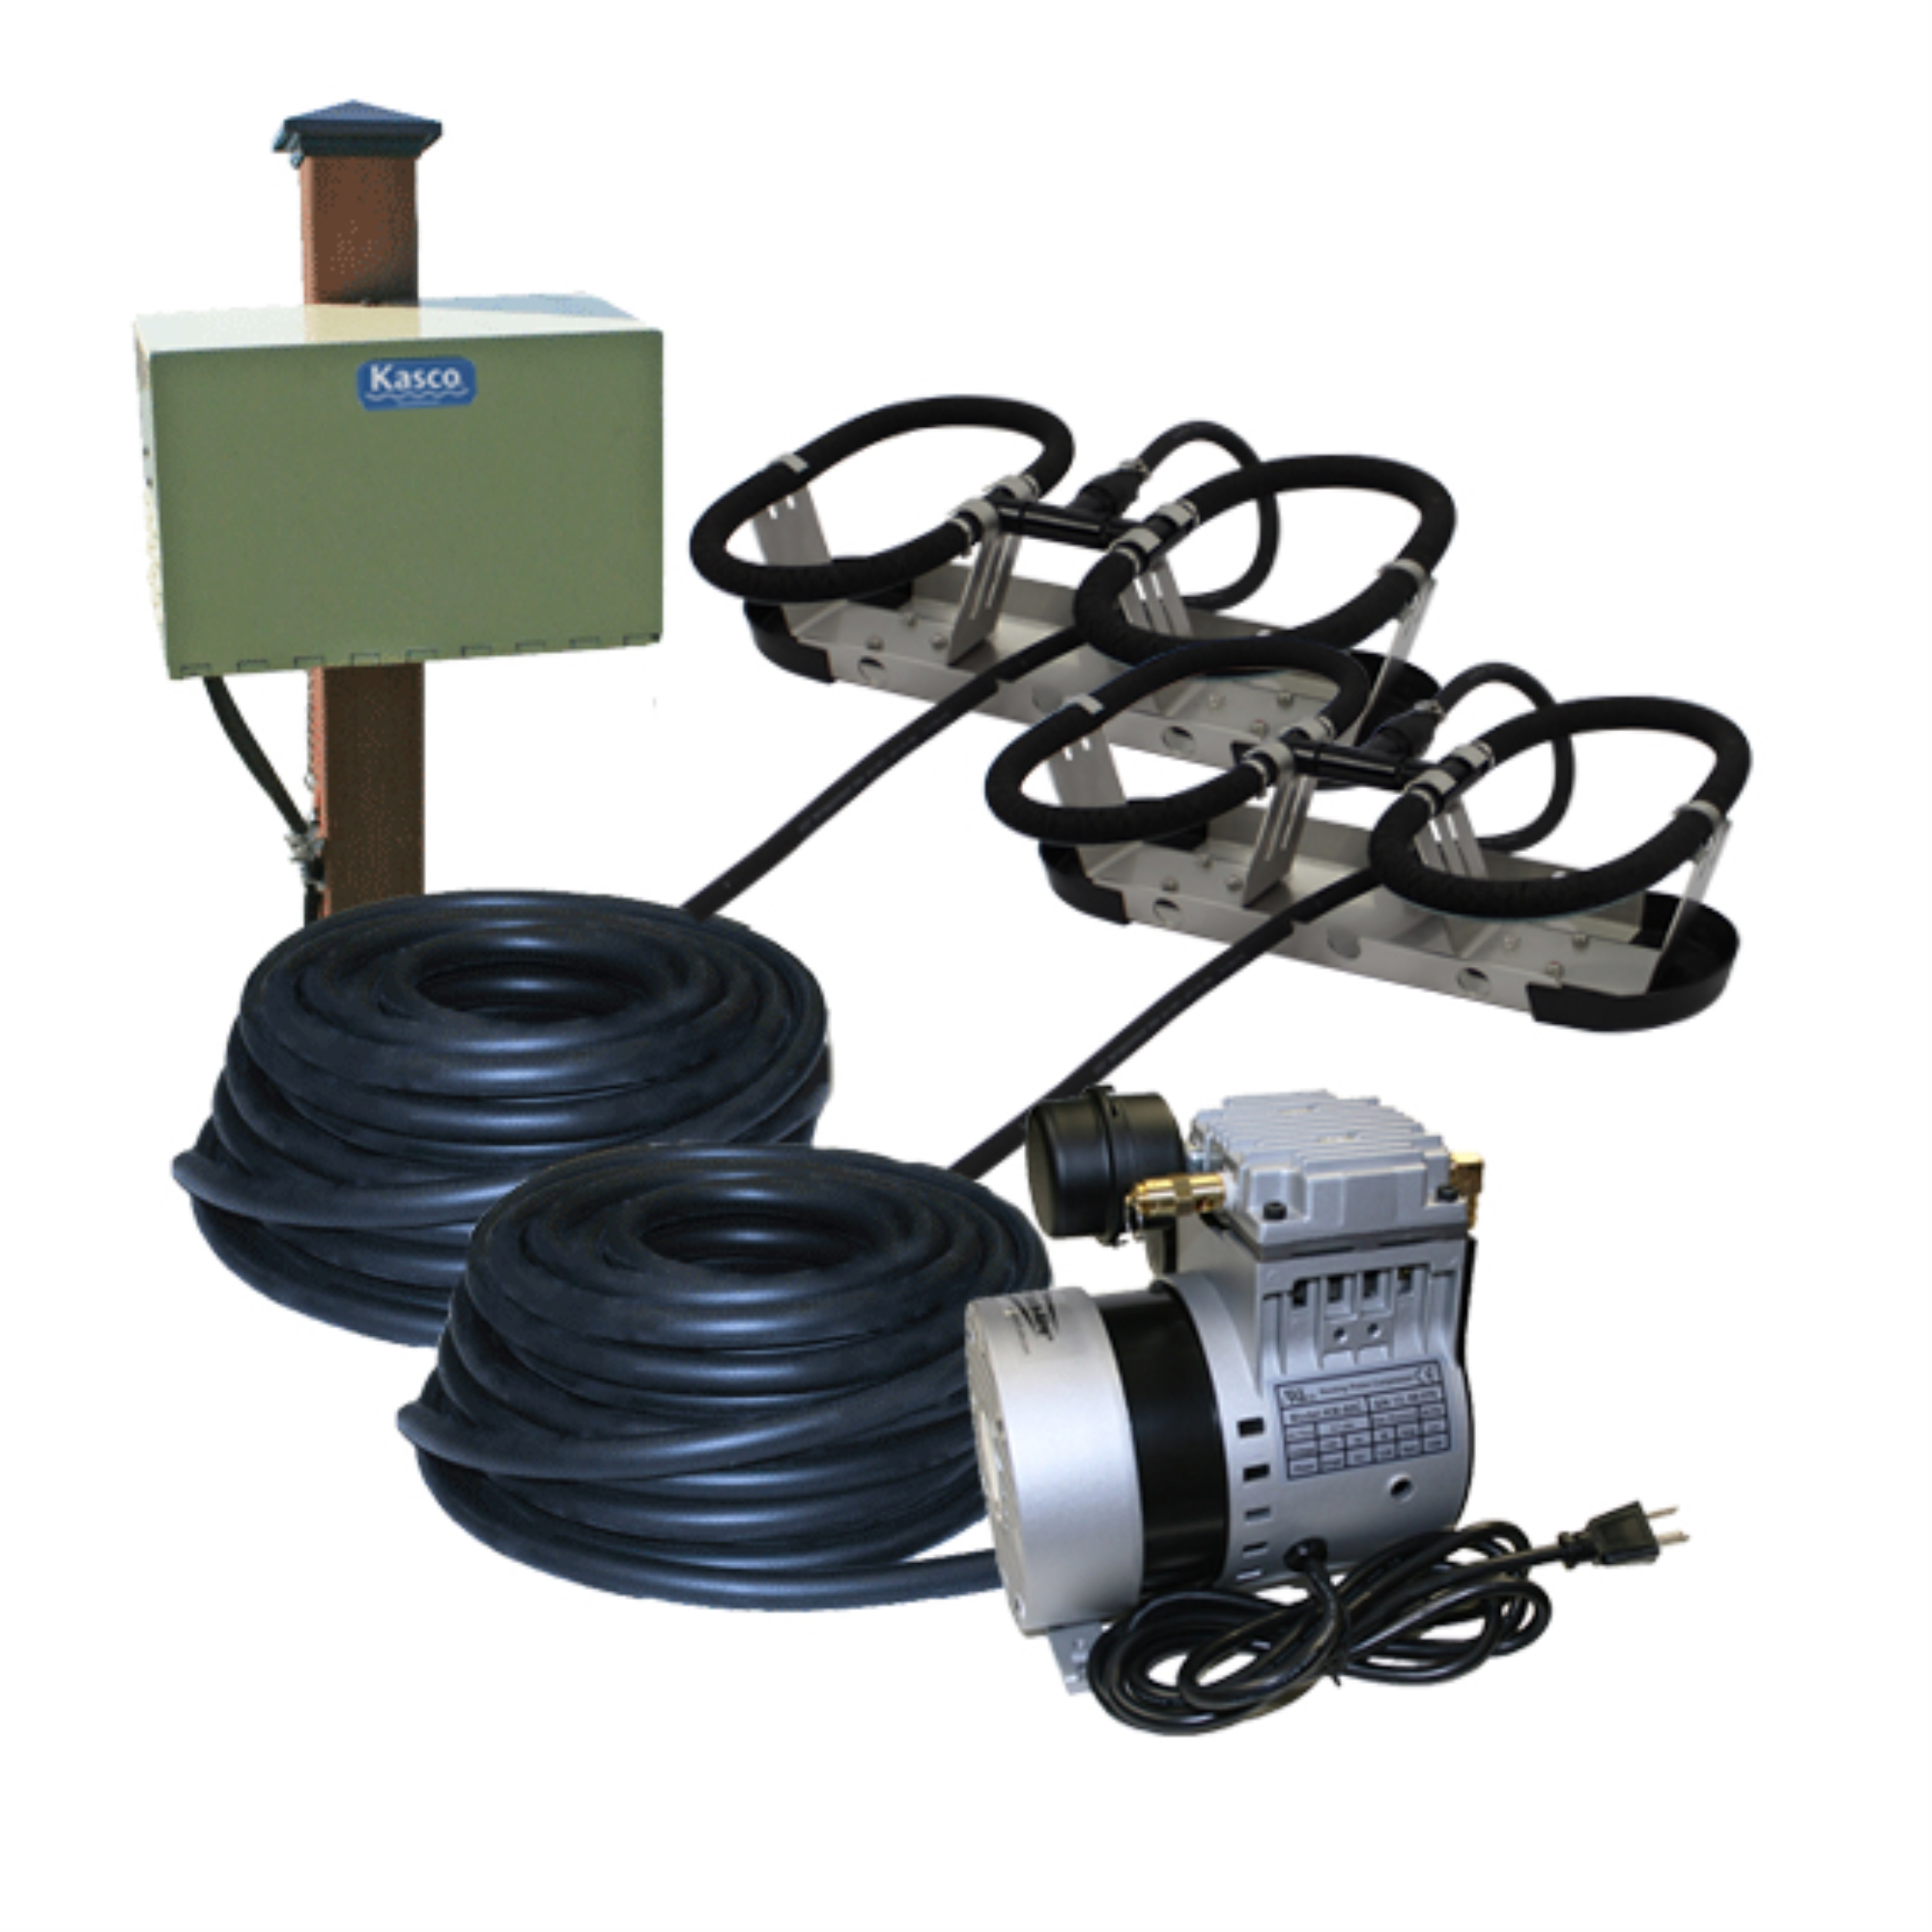 Kasco Aeration Robust-Aire KIT RA2PM Ponds To 3.0 Surface Acres 120V POST MOUNT